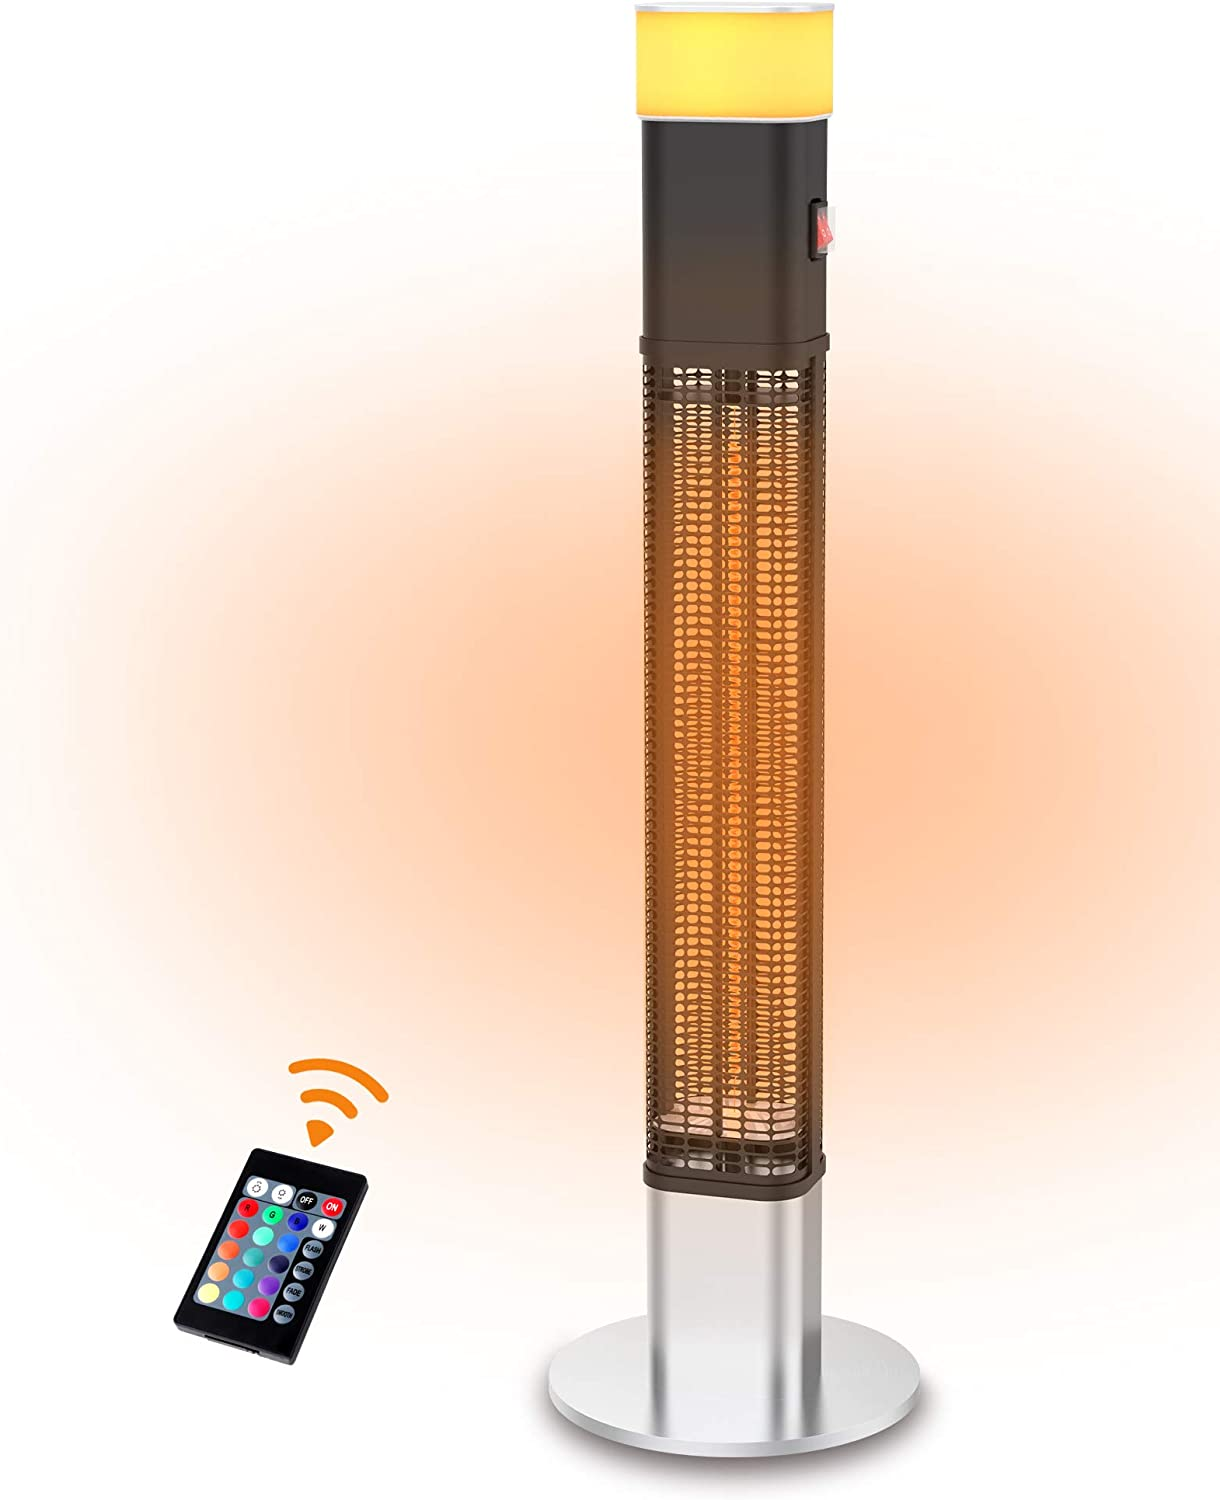 Outlet sale feature PATIOBOSS Max 62% OFF Electric Patio Heater Infrared wi Freestanding